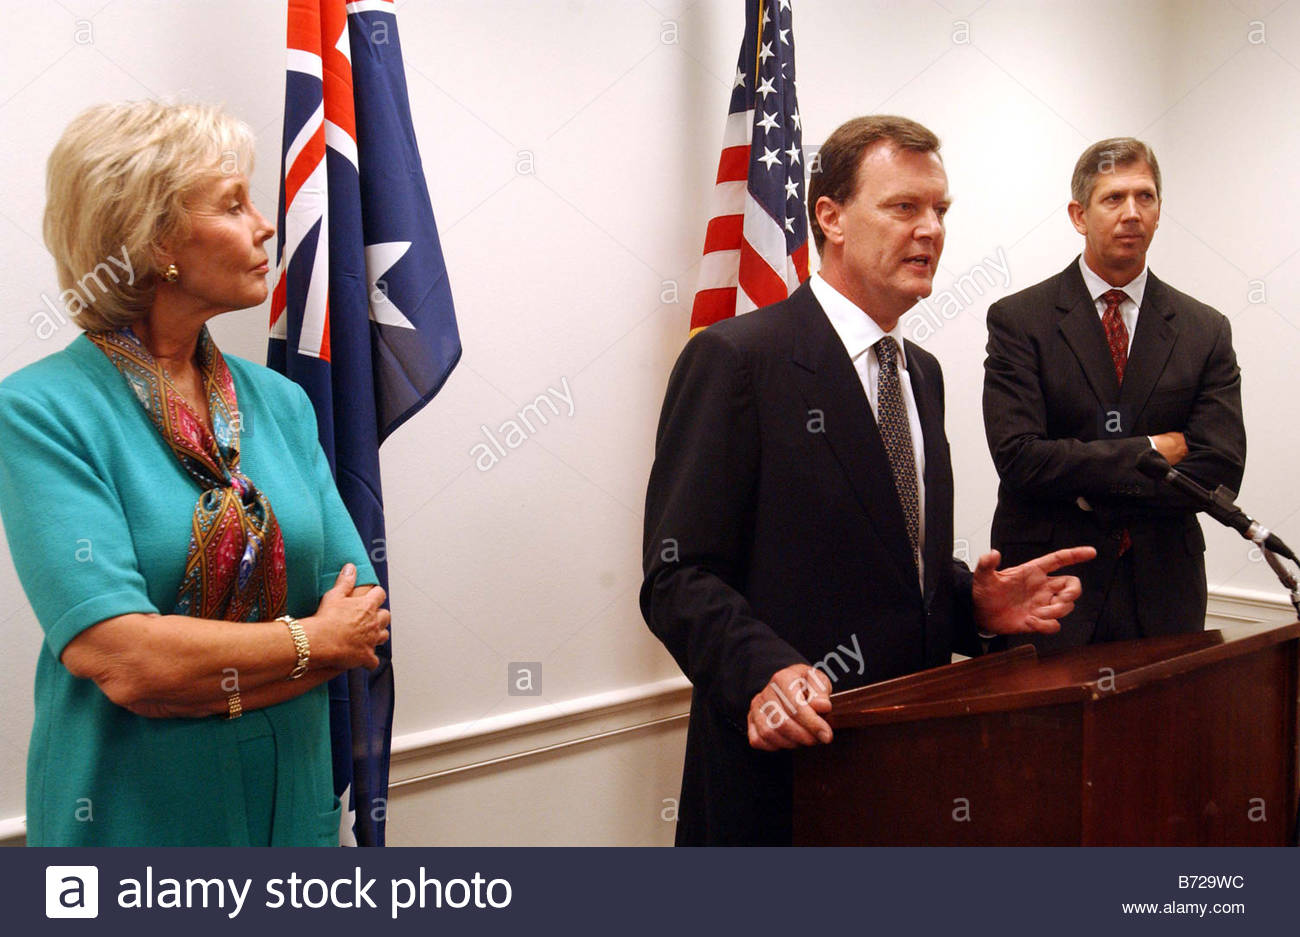 7 16 03 friends of australia congressional caucus jennifer dunn r 7 16 03 friends of australia congressional caucus jennifer dunn r wash and cal dooley d calif during a news conference announcing the formation of the stopboris Images